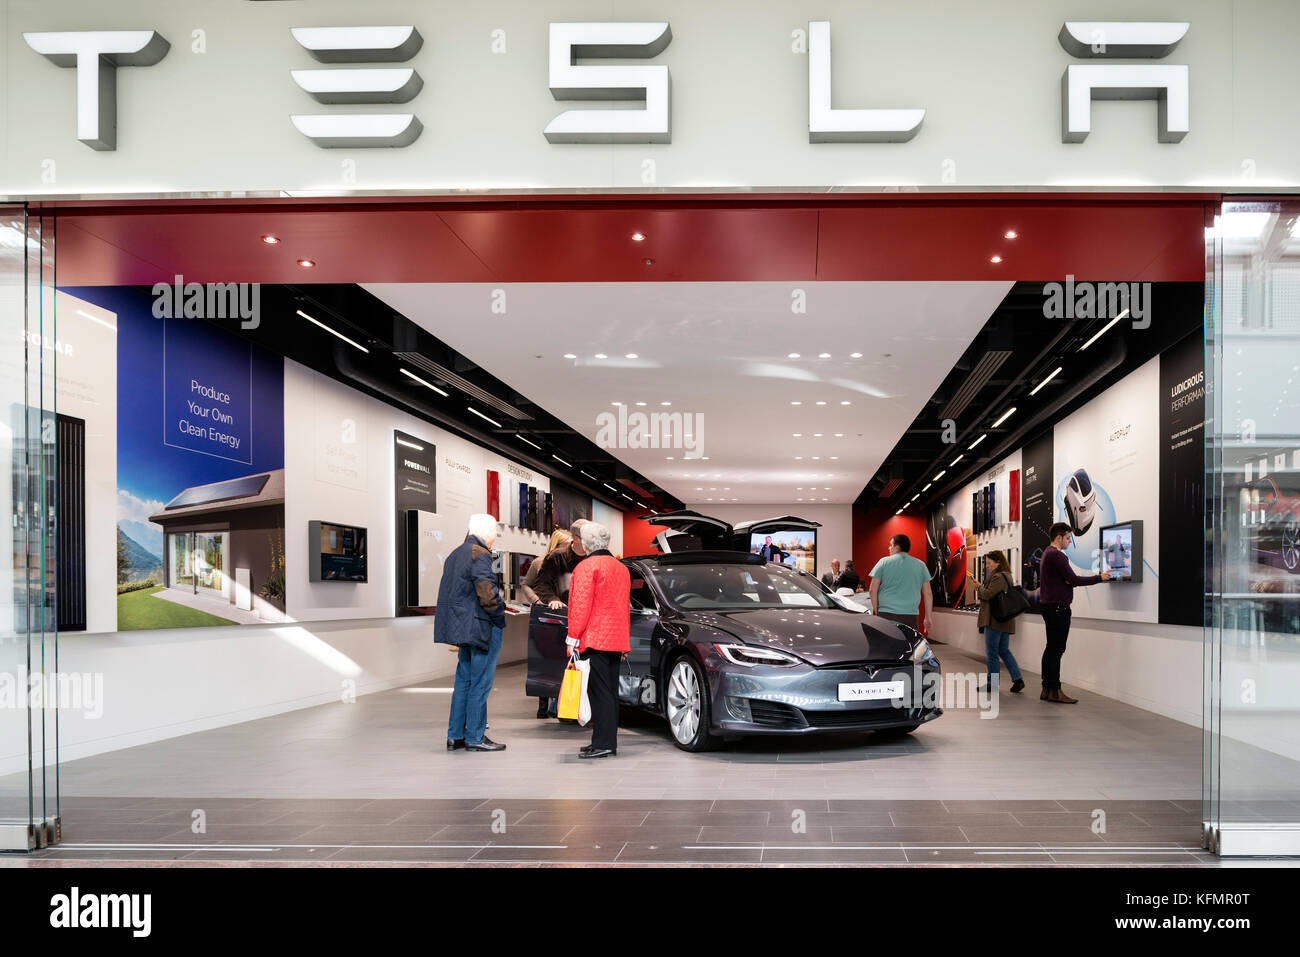 Tesla electric car model s for sale in a pop up store, UK Stock